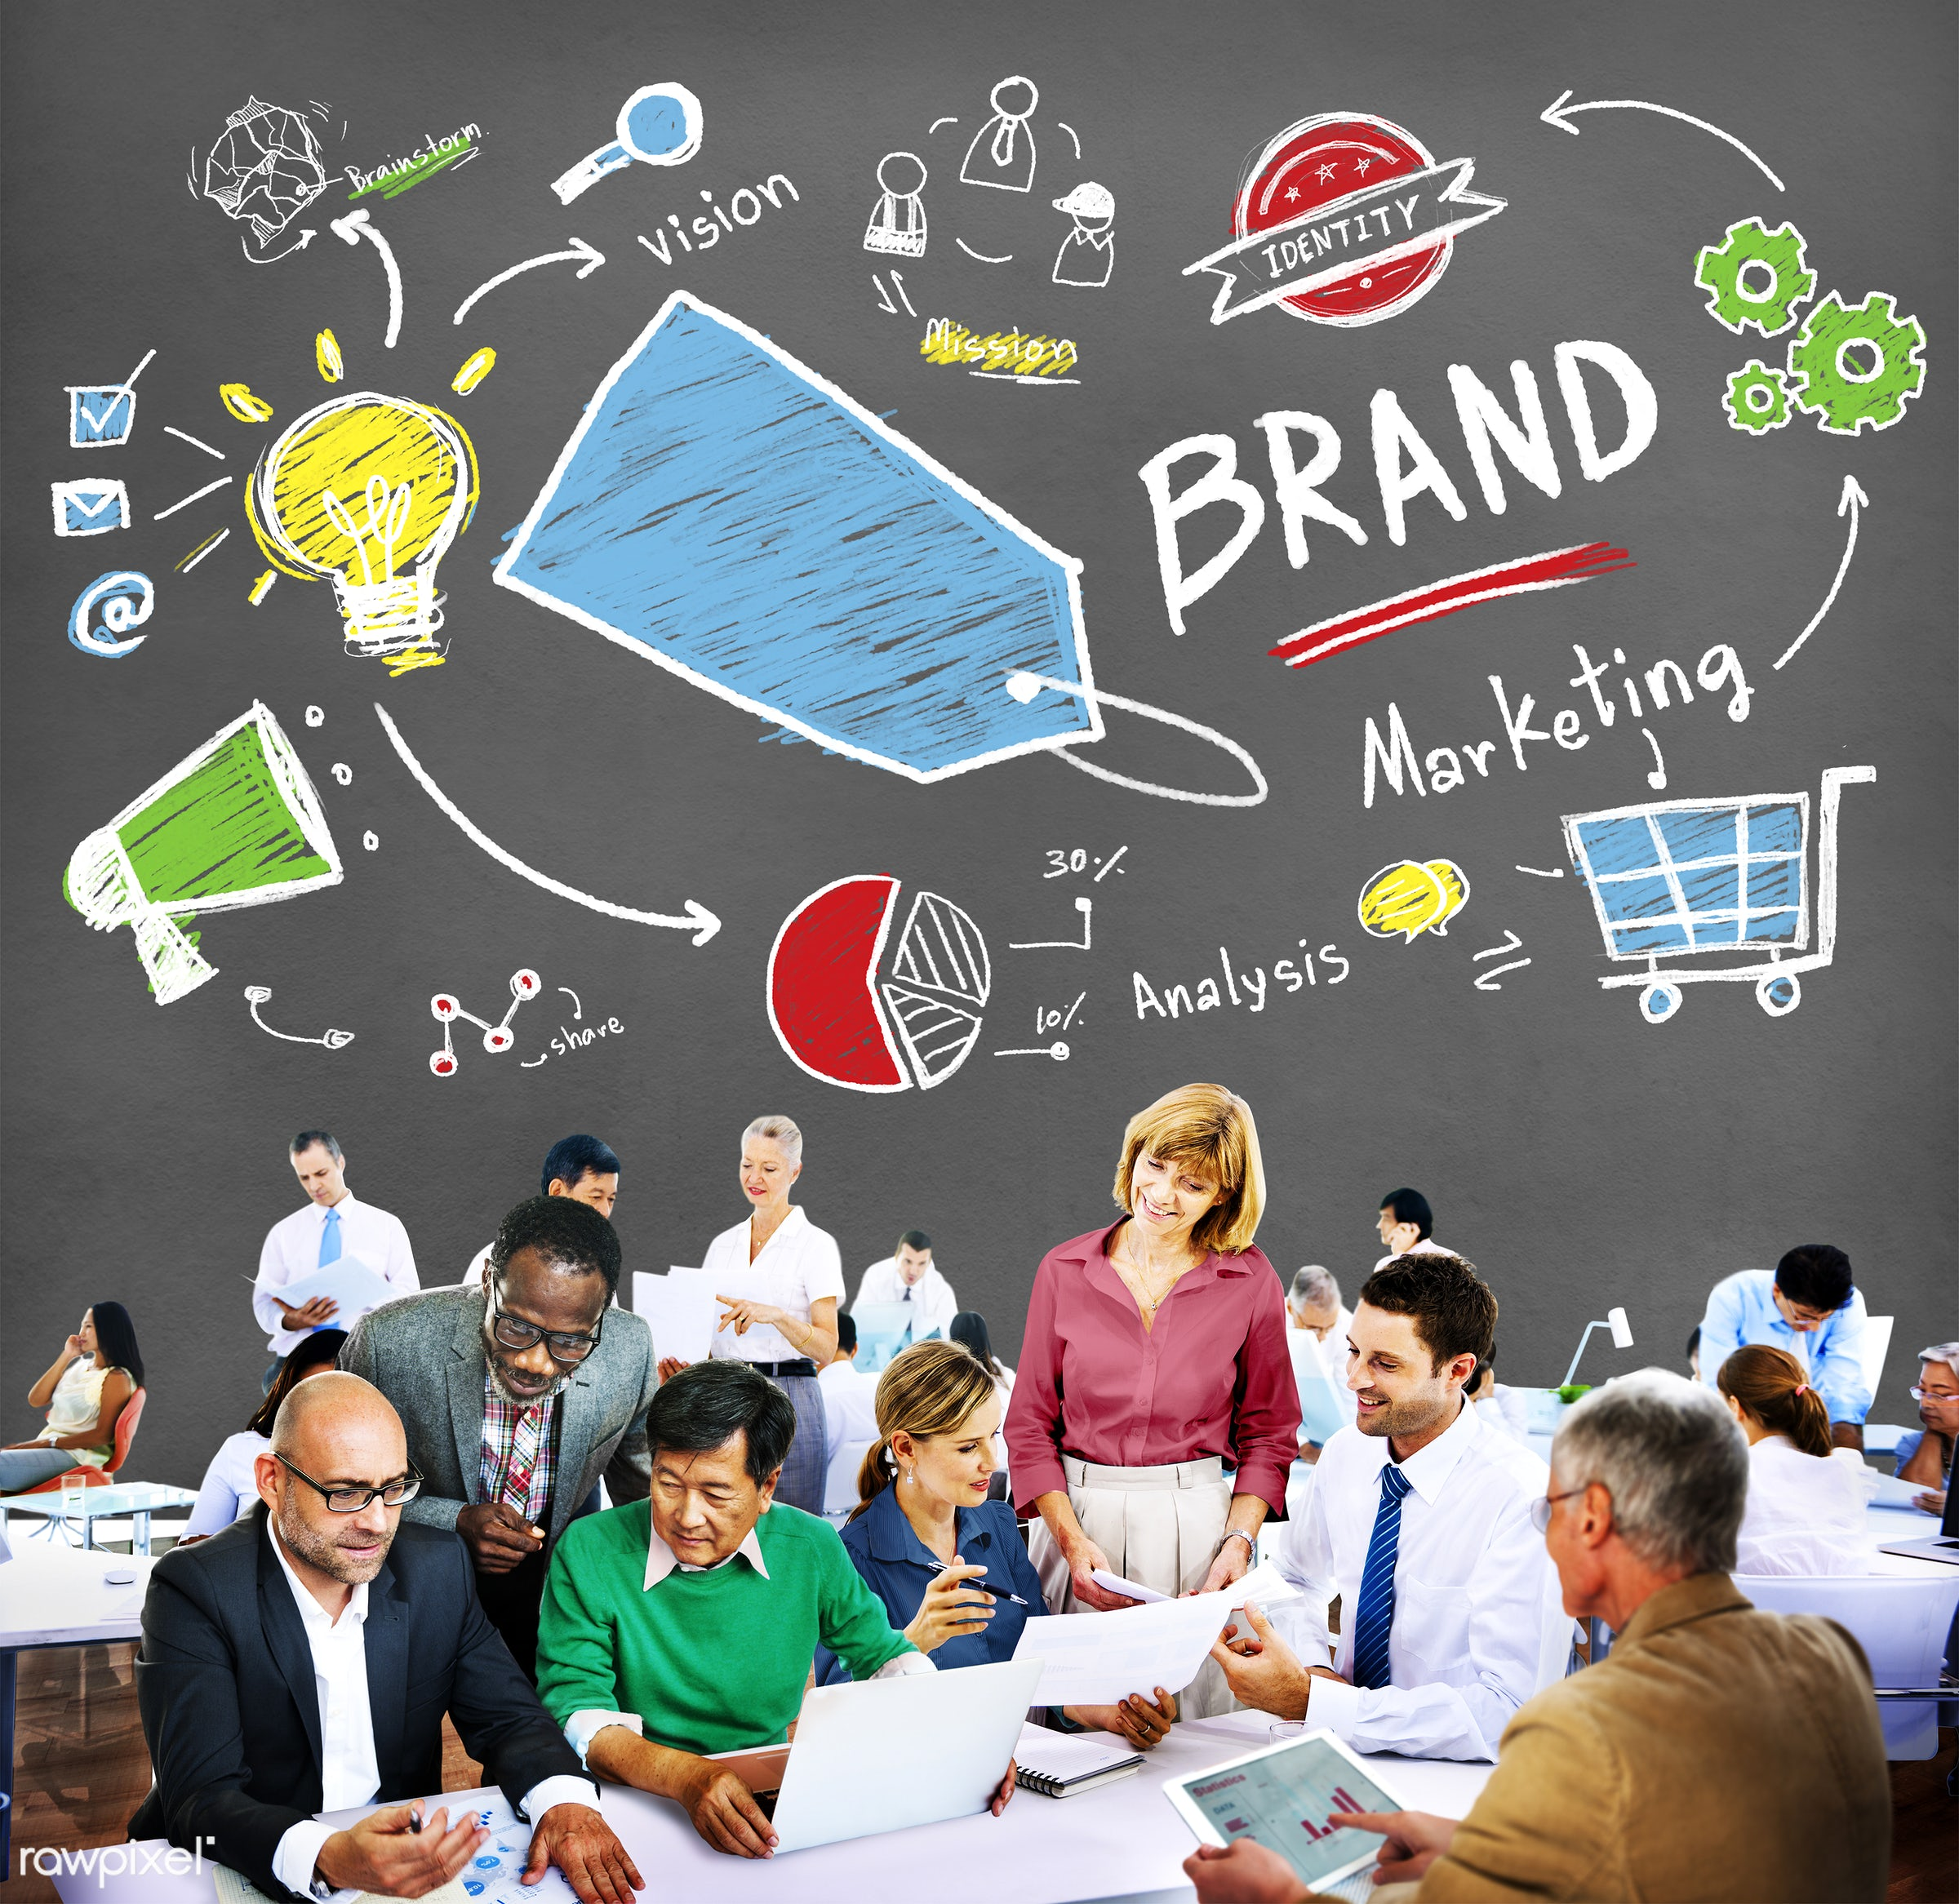 advertising, analysis, brand, brand name, branding, business, business people, businessmen, businesswomen, busy, commercial...